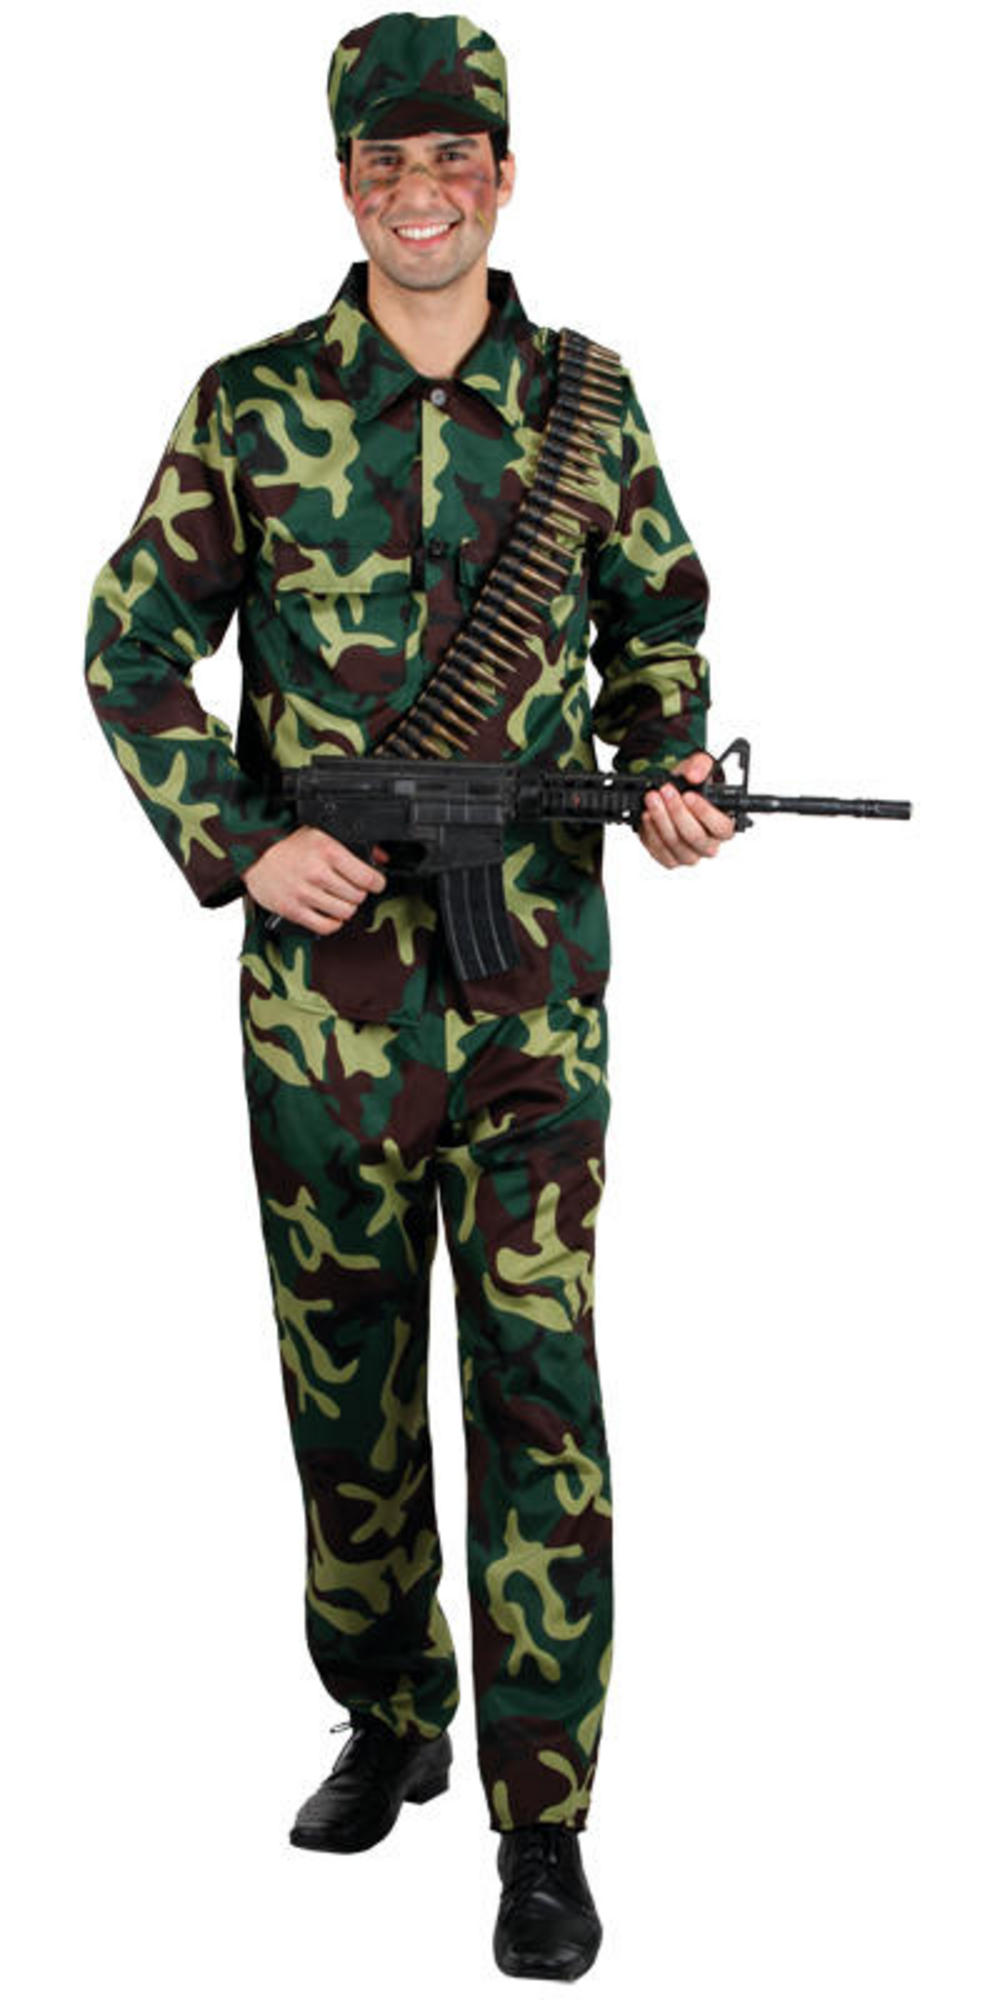 Menu0027s Army Soldier Fancy Dress Costume  sc 1 st  Mega Fancy Dress & Menu0027s Army Soldier Fancy Dress Costume | Letter